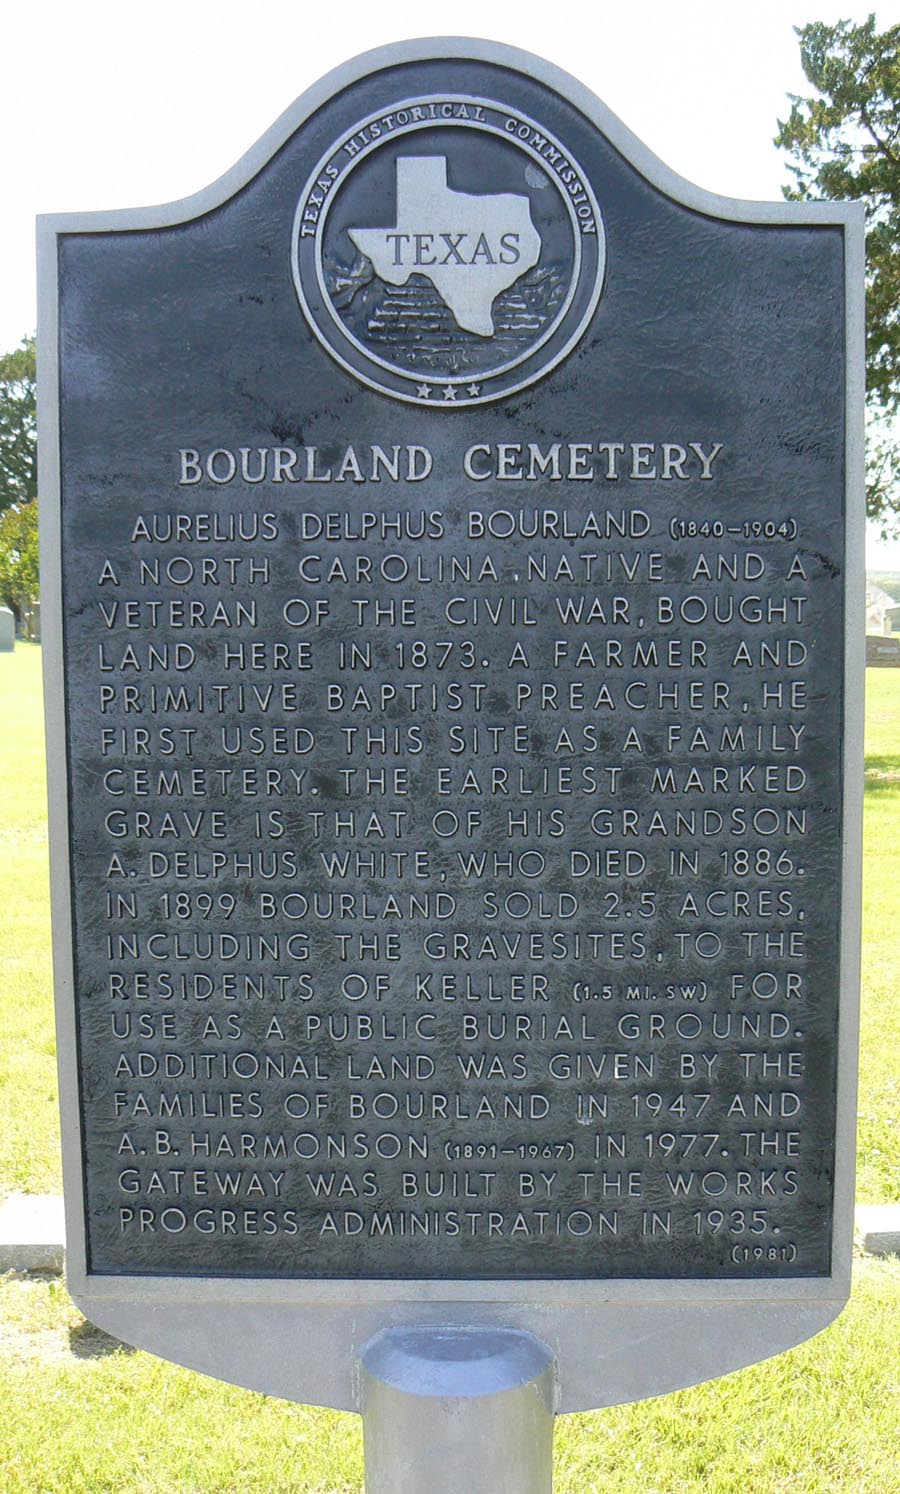 Bourland Cemetery